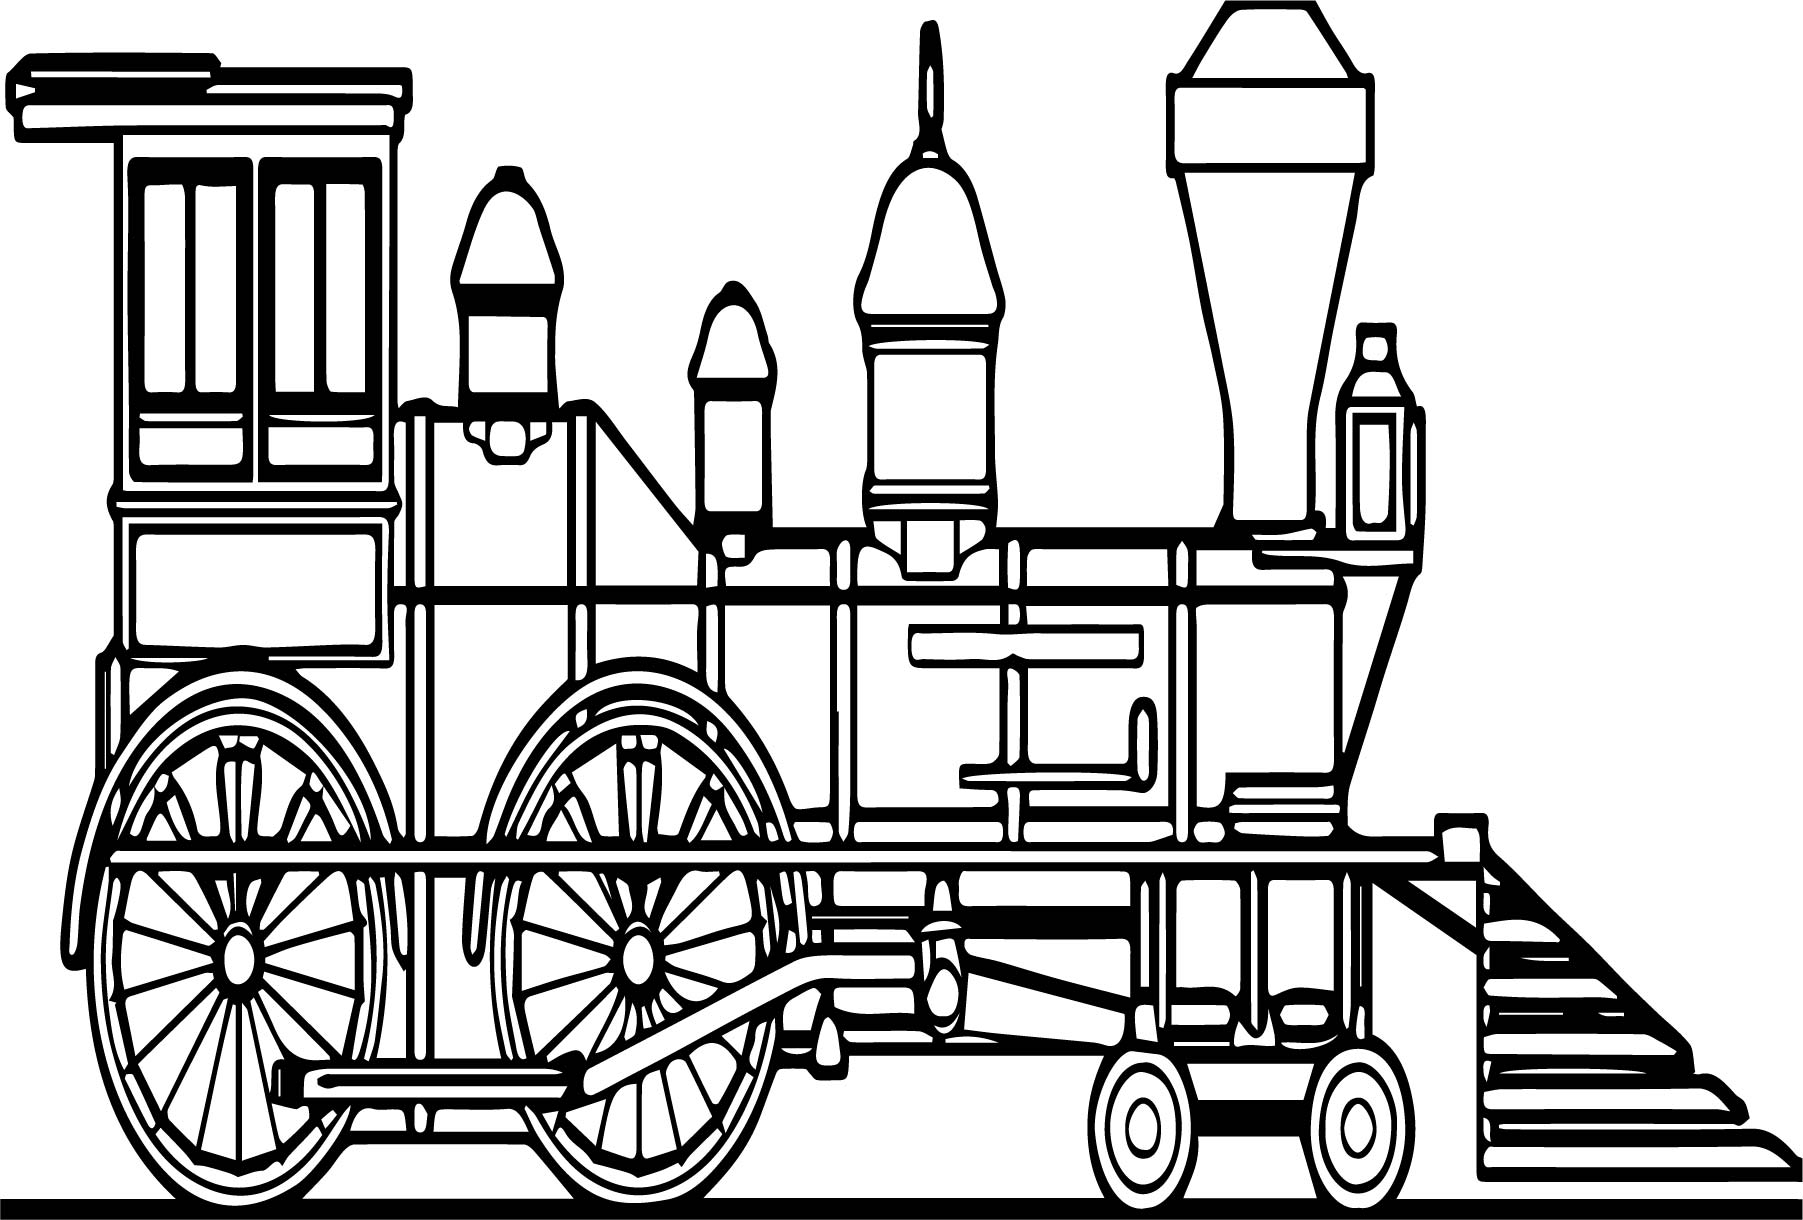 train engine coloring page train coloring pages free download on clipartmag engine coloring train page